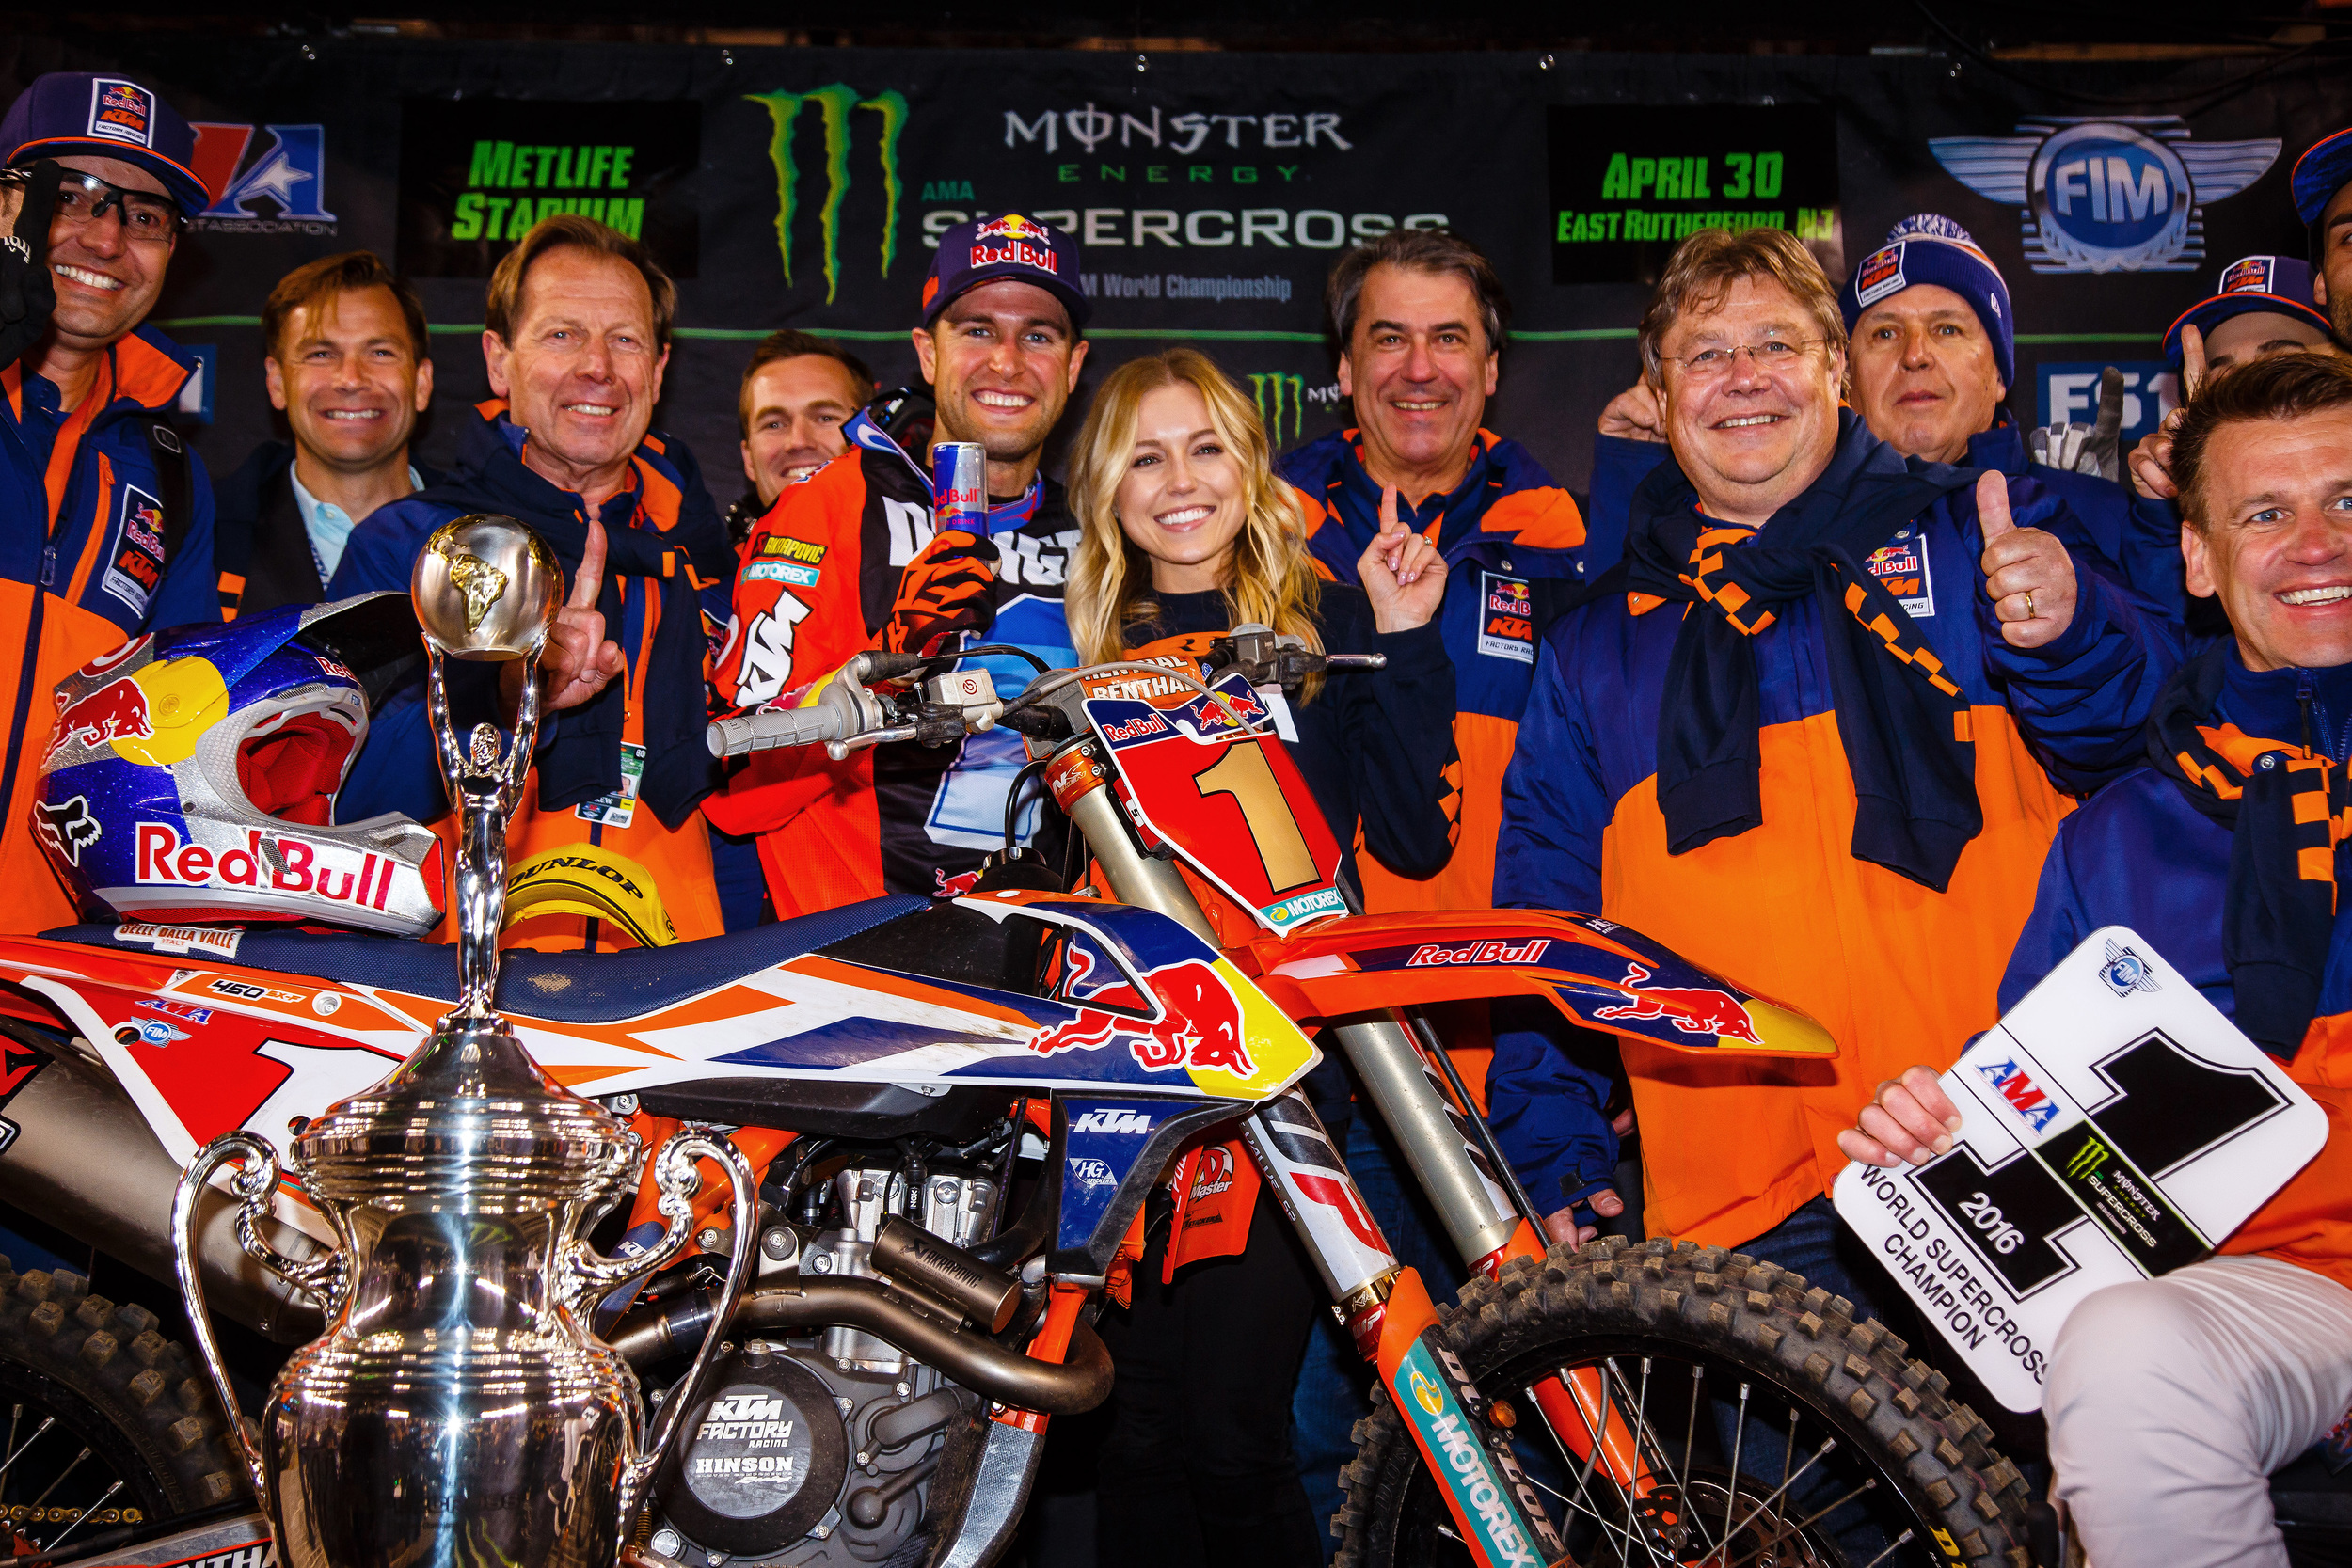 Ryan Dungey and KTM 2016 AMA Supercross Champions